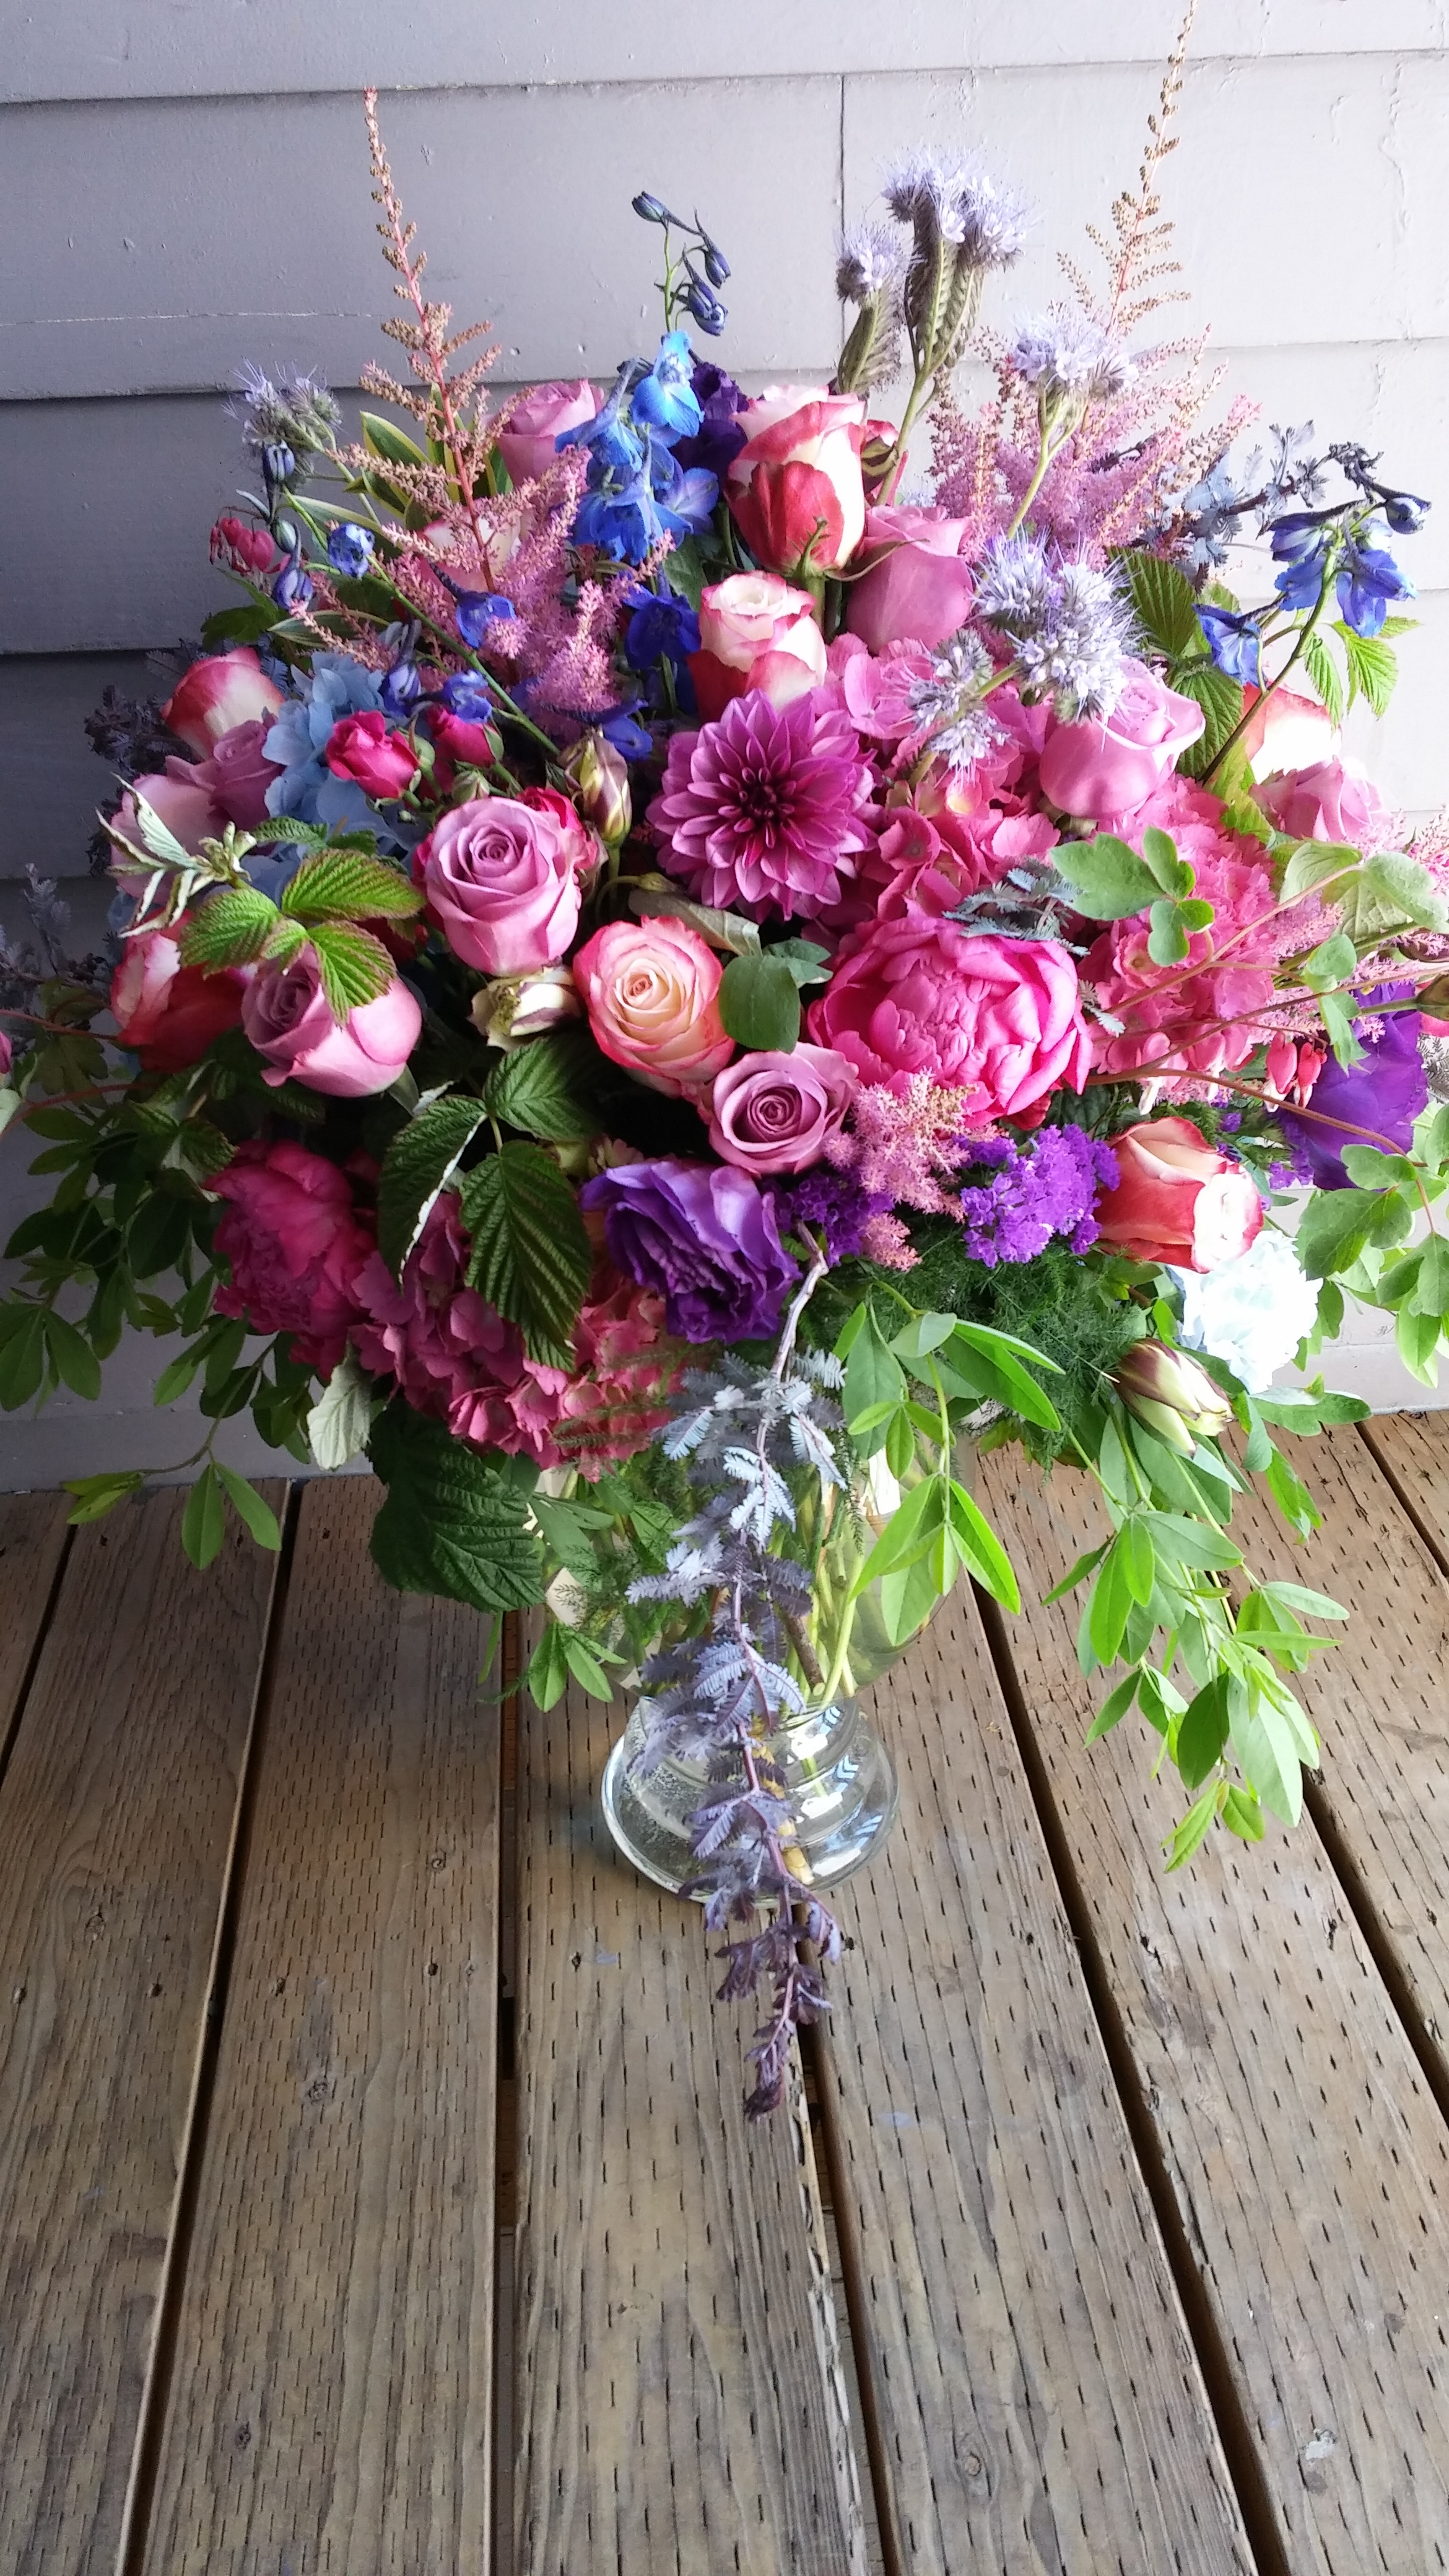 33. Warm lavender and pink overflowing bouquet